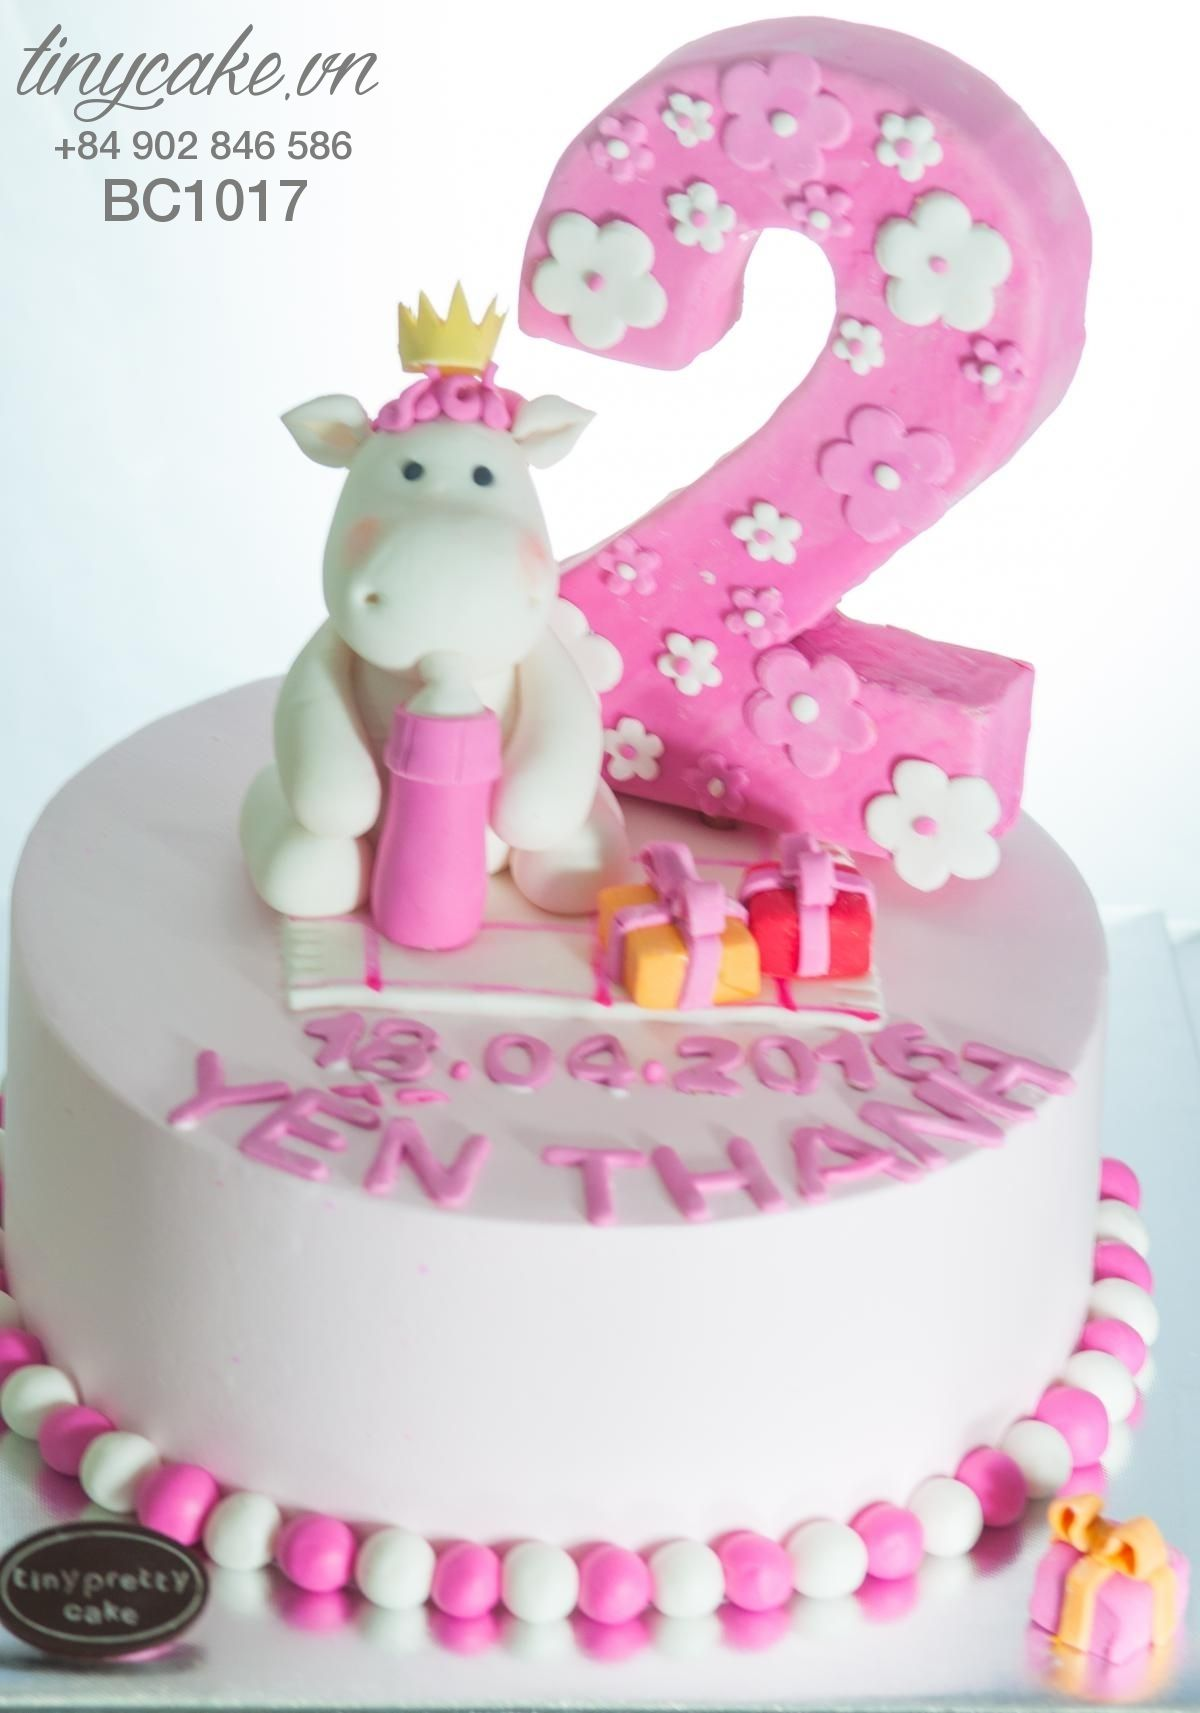 Stupendous Cake For Birthday Girl 2 Years The Cake Boutique Personalised Birthday Cards Arneslily Jamesorg